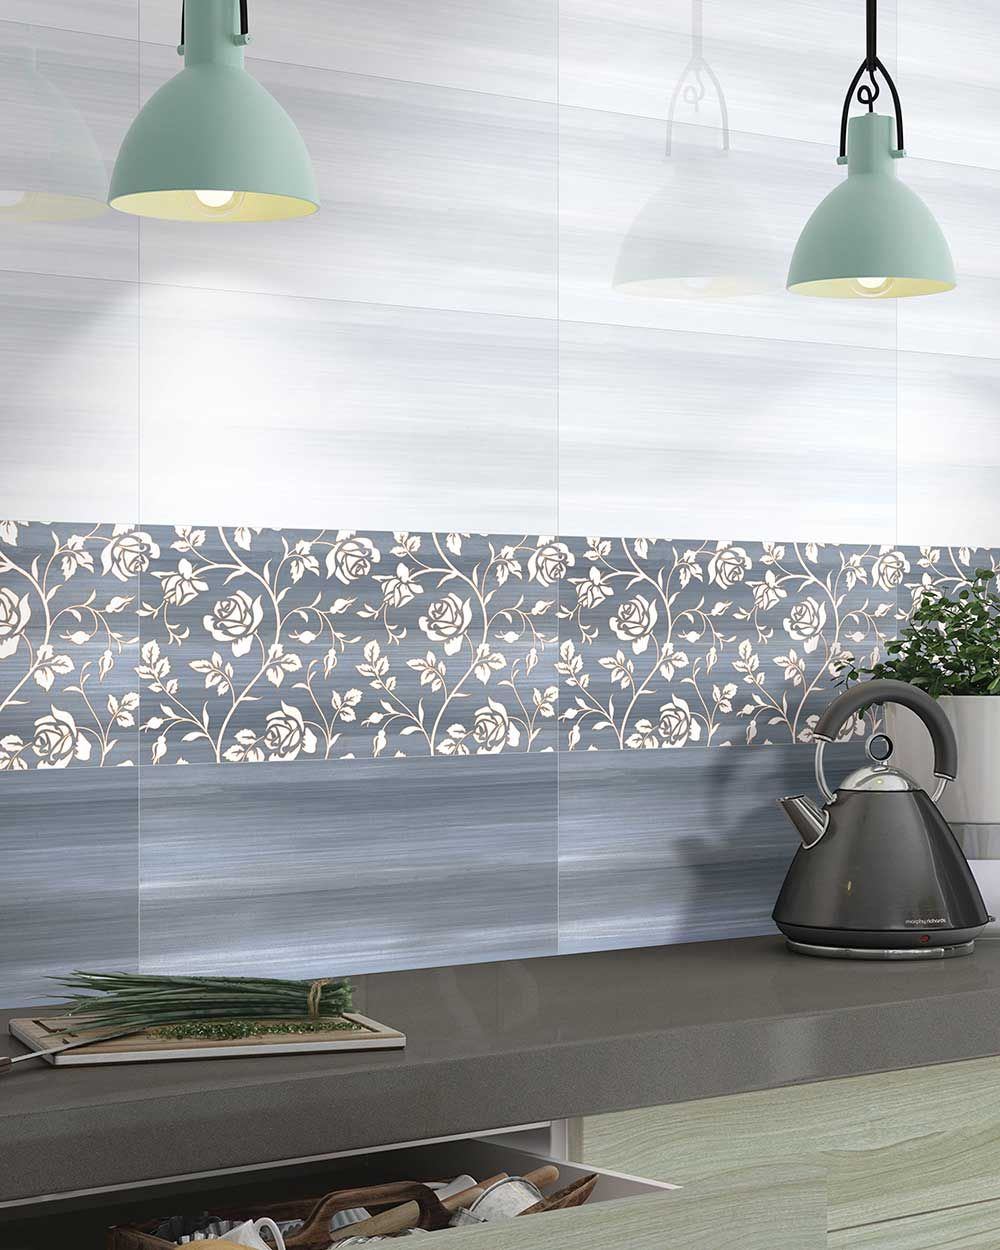 Hd 30x60 Cm Modern Kitchen Tiles Wall Tiles Design Wall Tiles